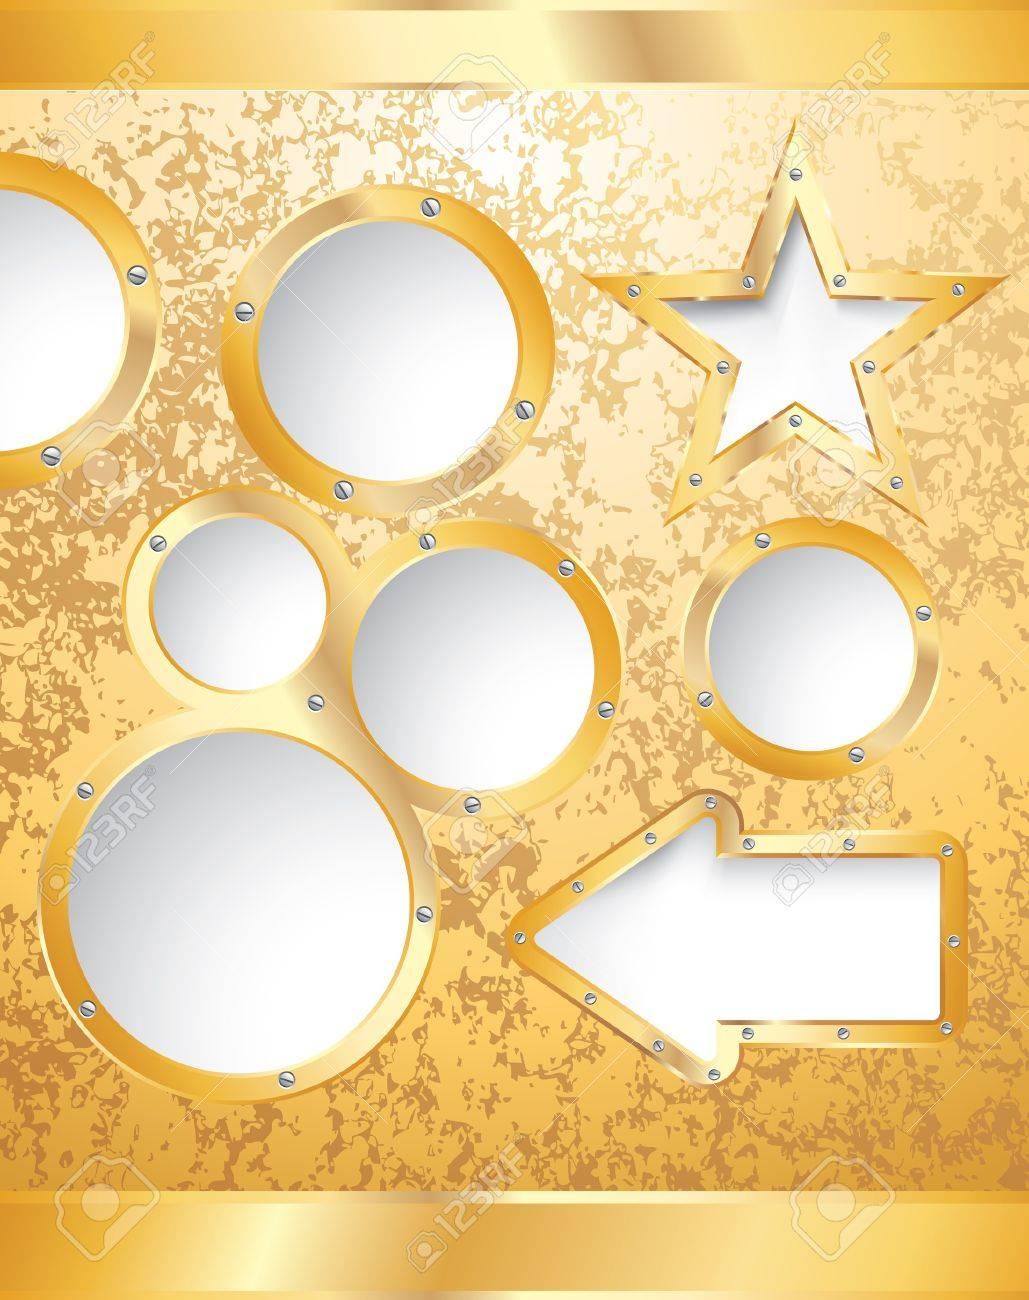 golden template for diverse business Stock Vector - 15417019